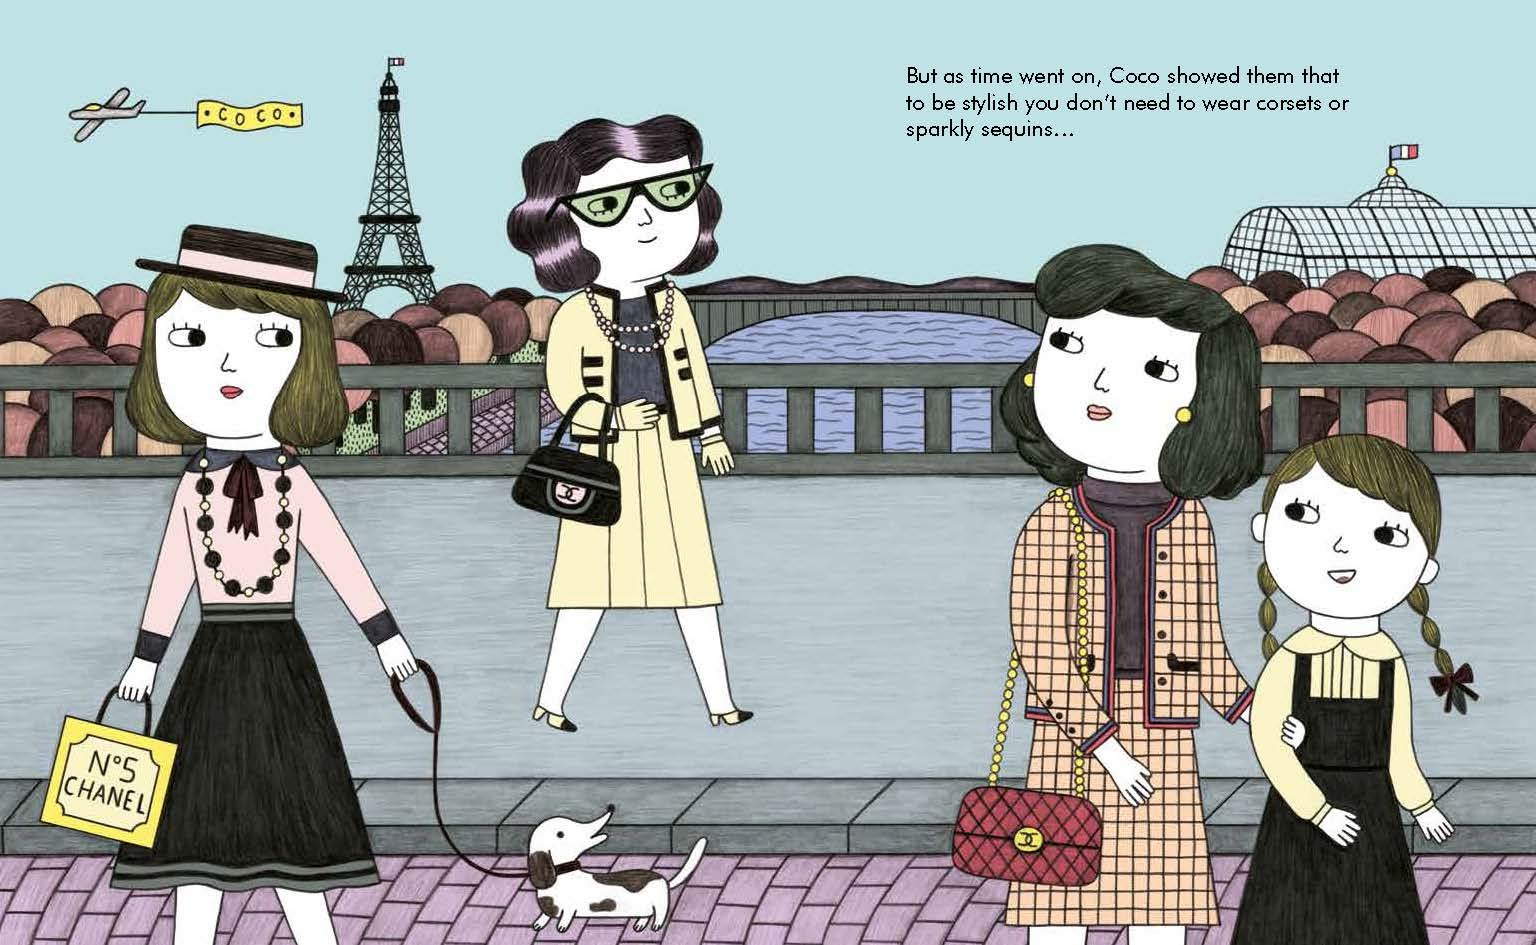 Coco Chanel (Little People, BIG DREAMS) by AMERICAN WEST BOOKS (Image #1)